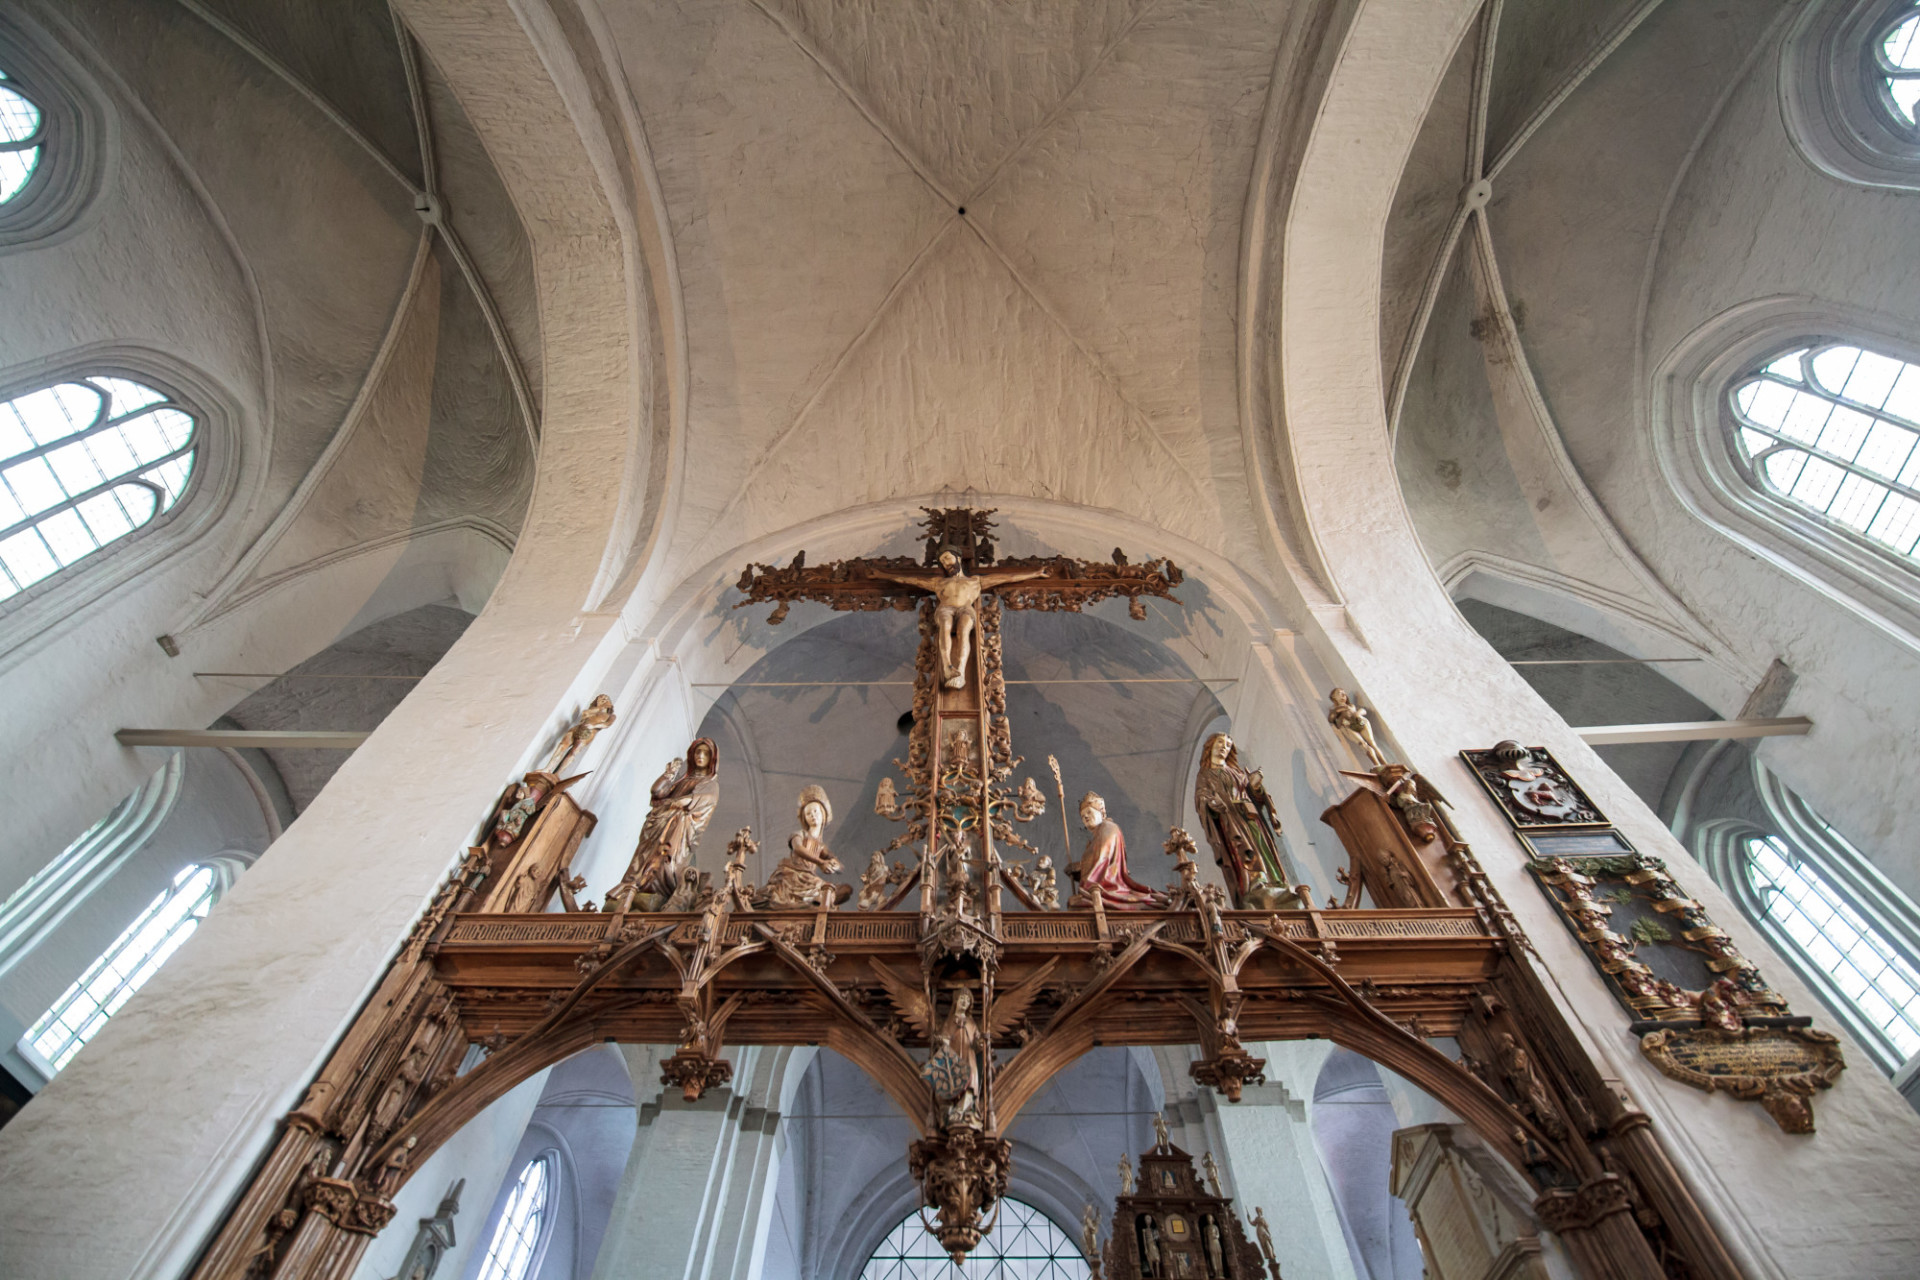 Jesus Cross in a Cathedral by Lübeck